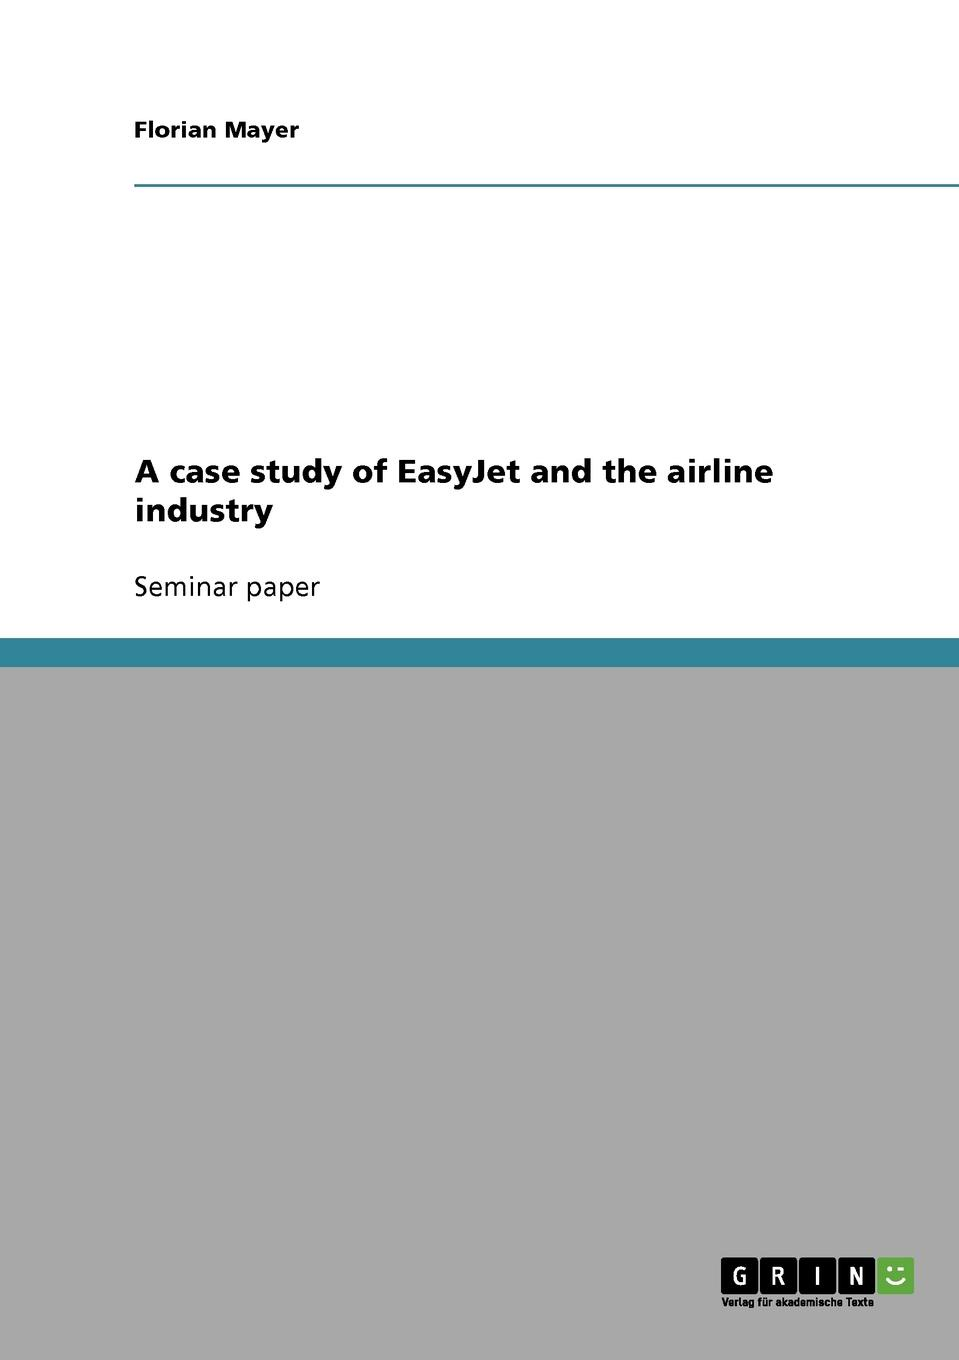 Florian Mayer A case study of EasyJet and the airline industry arend grünewälder analysis of nokia s corporate business and marketing strategies